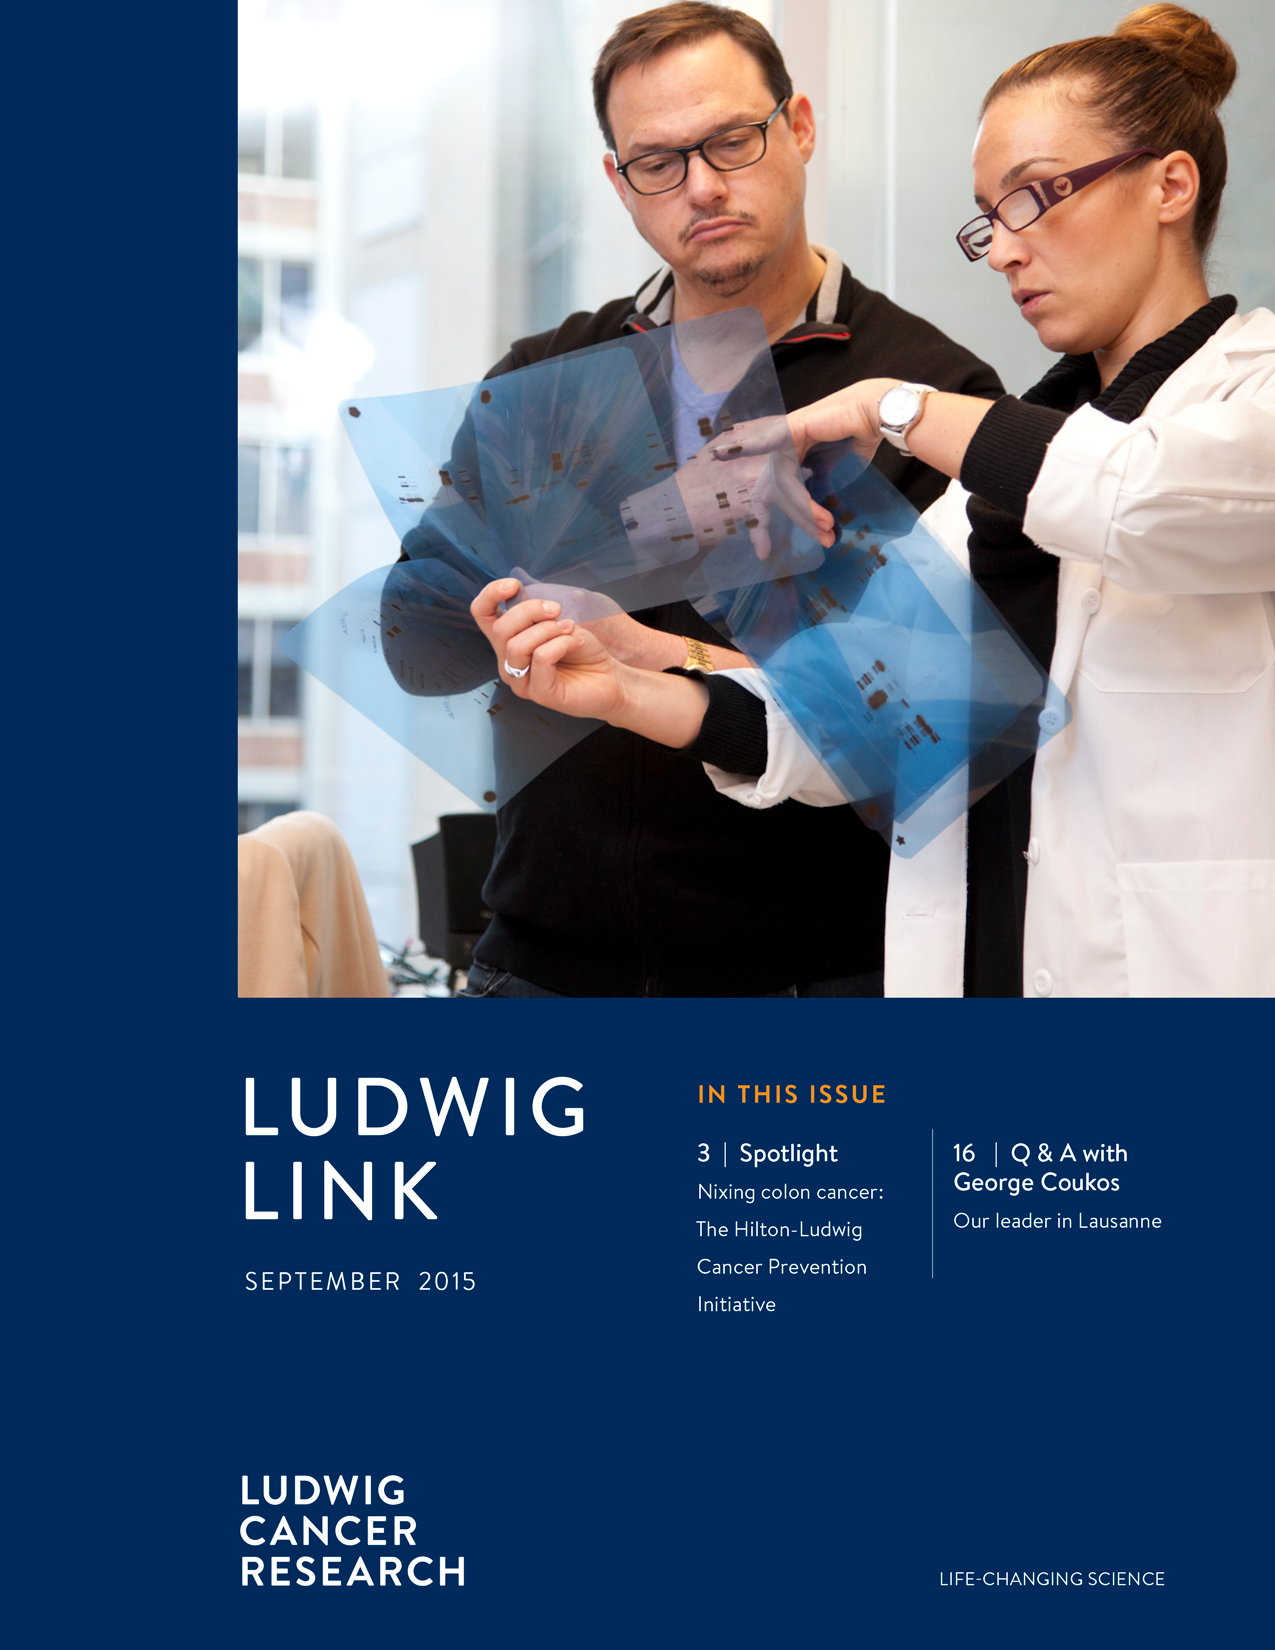 Ludwig Link September 2015 cover